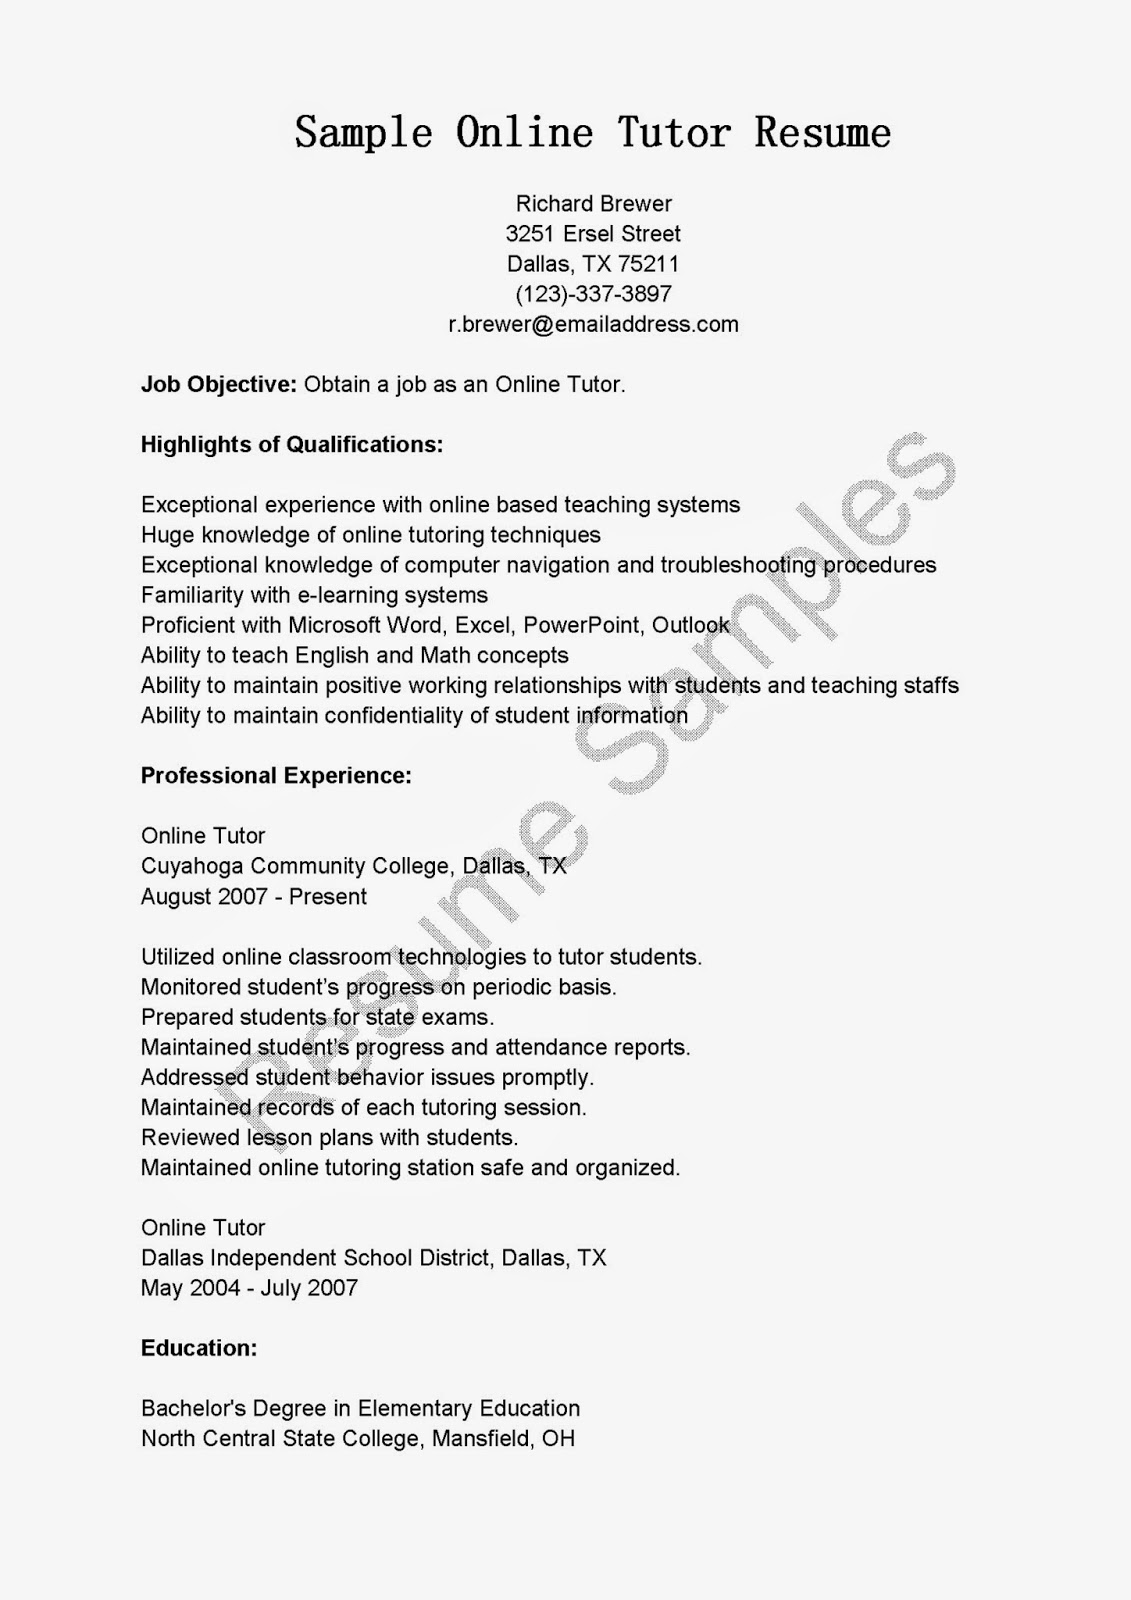 resume samples  peer tutor resume sample